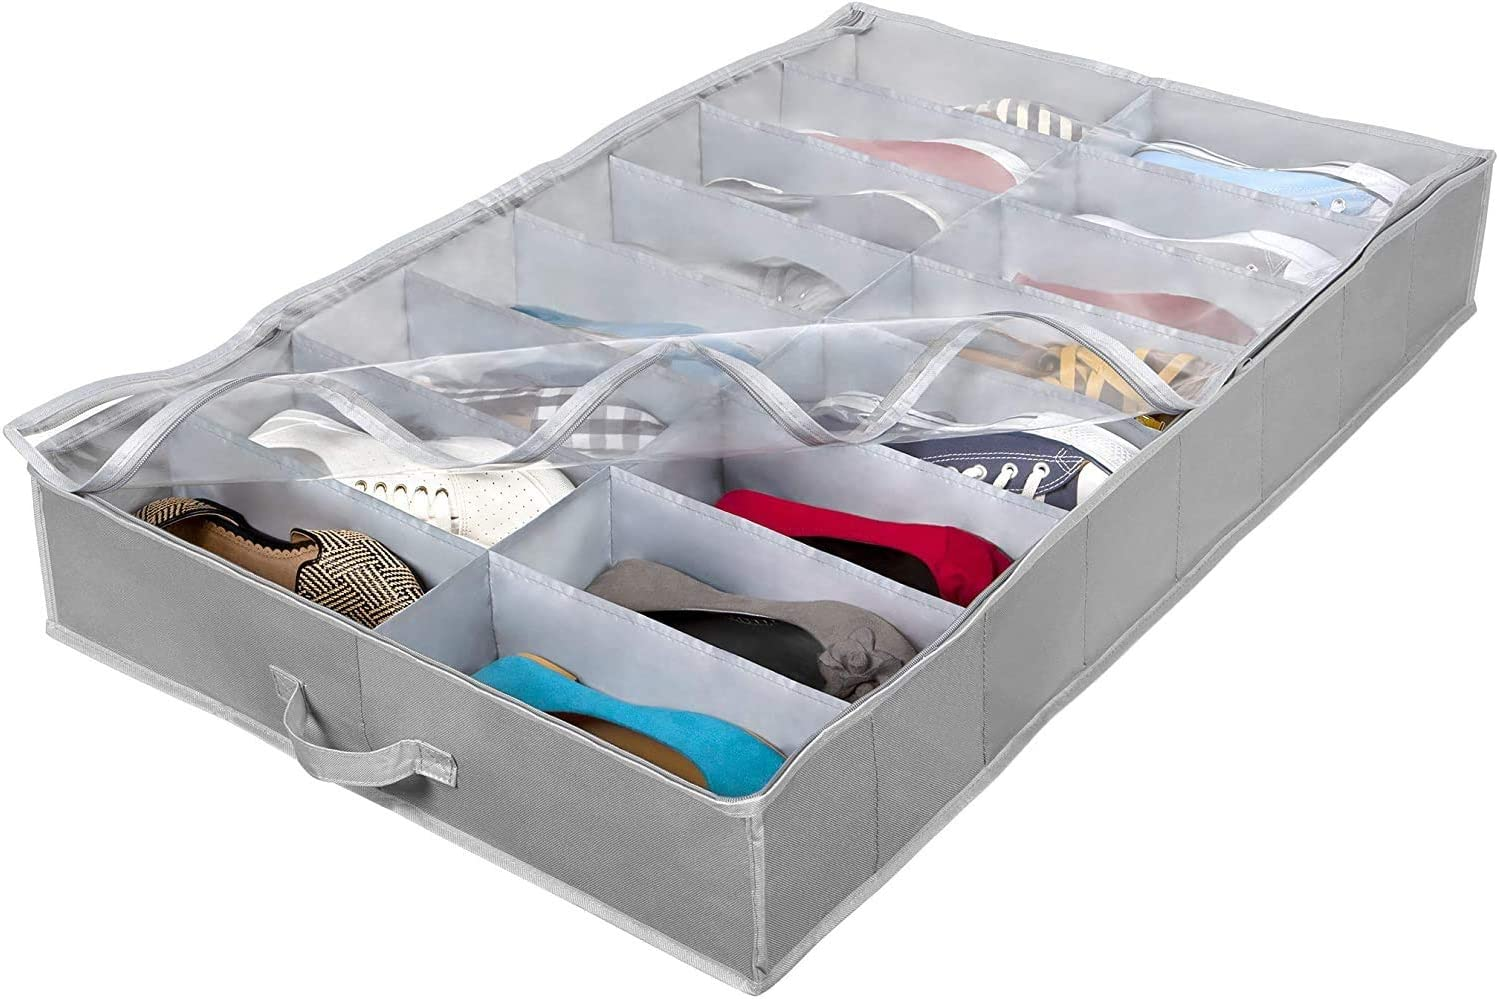 Extra-Large Under Bed Shoe Storage Organizer - Underbed Storage Solution Fits Men's and Women's Shoes, High Heels, and Sneakers with Durable Vinyl Cover & Extra-Strong Zipper - Grey